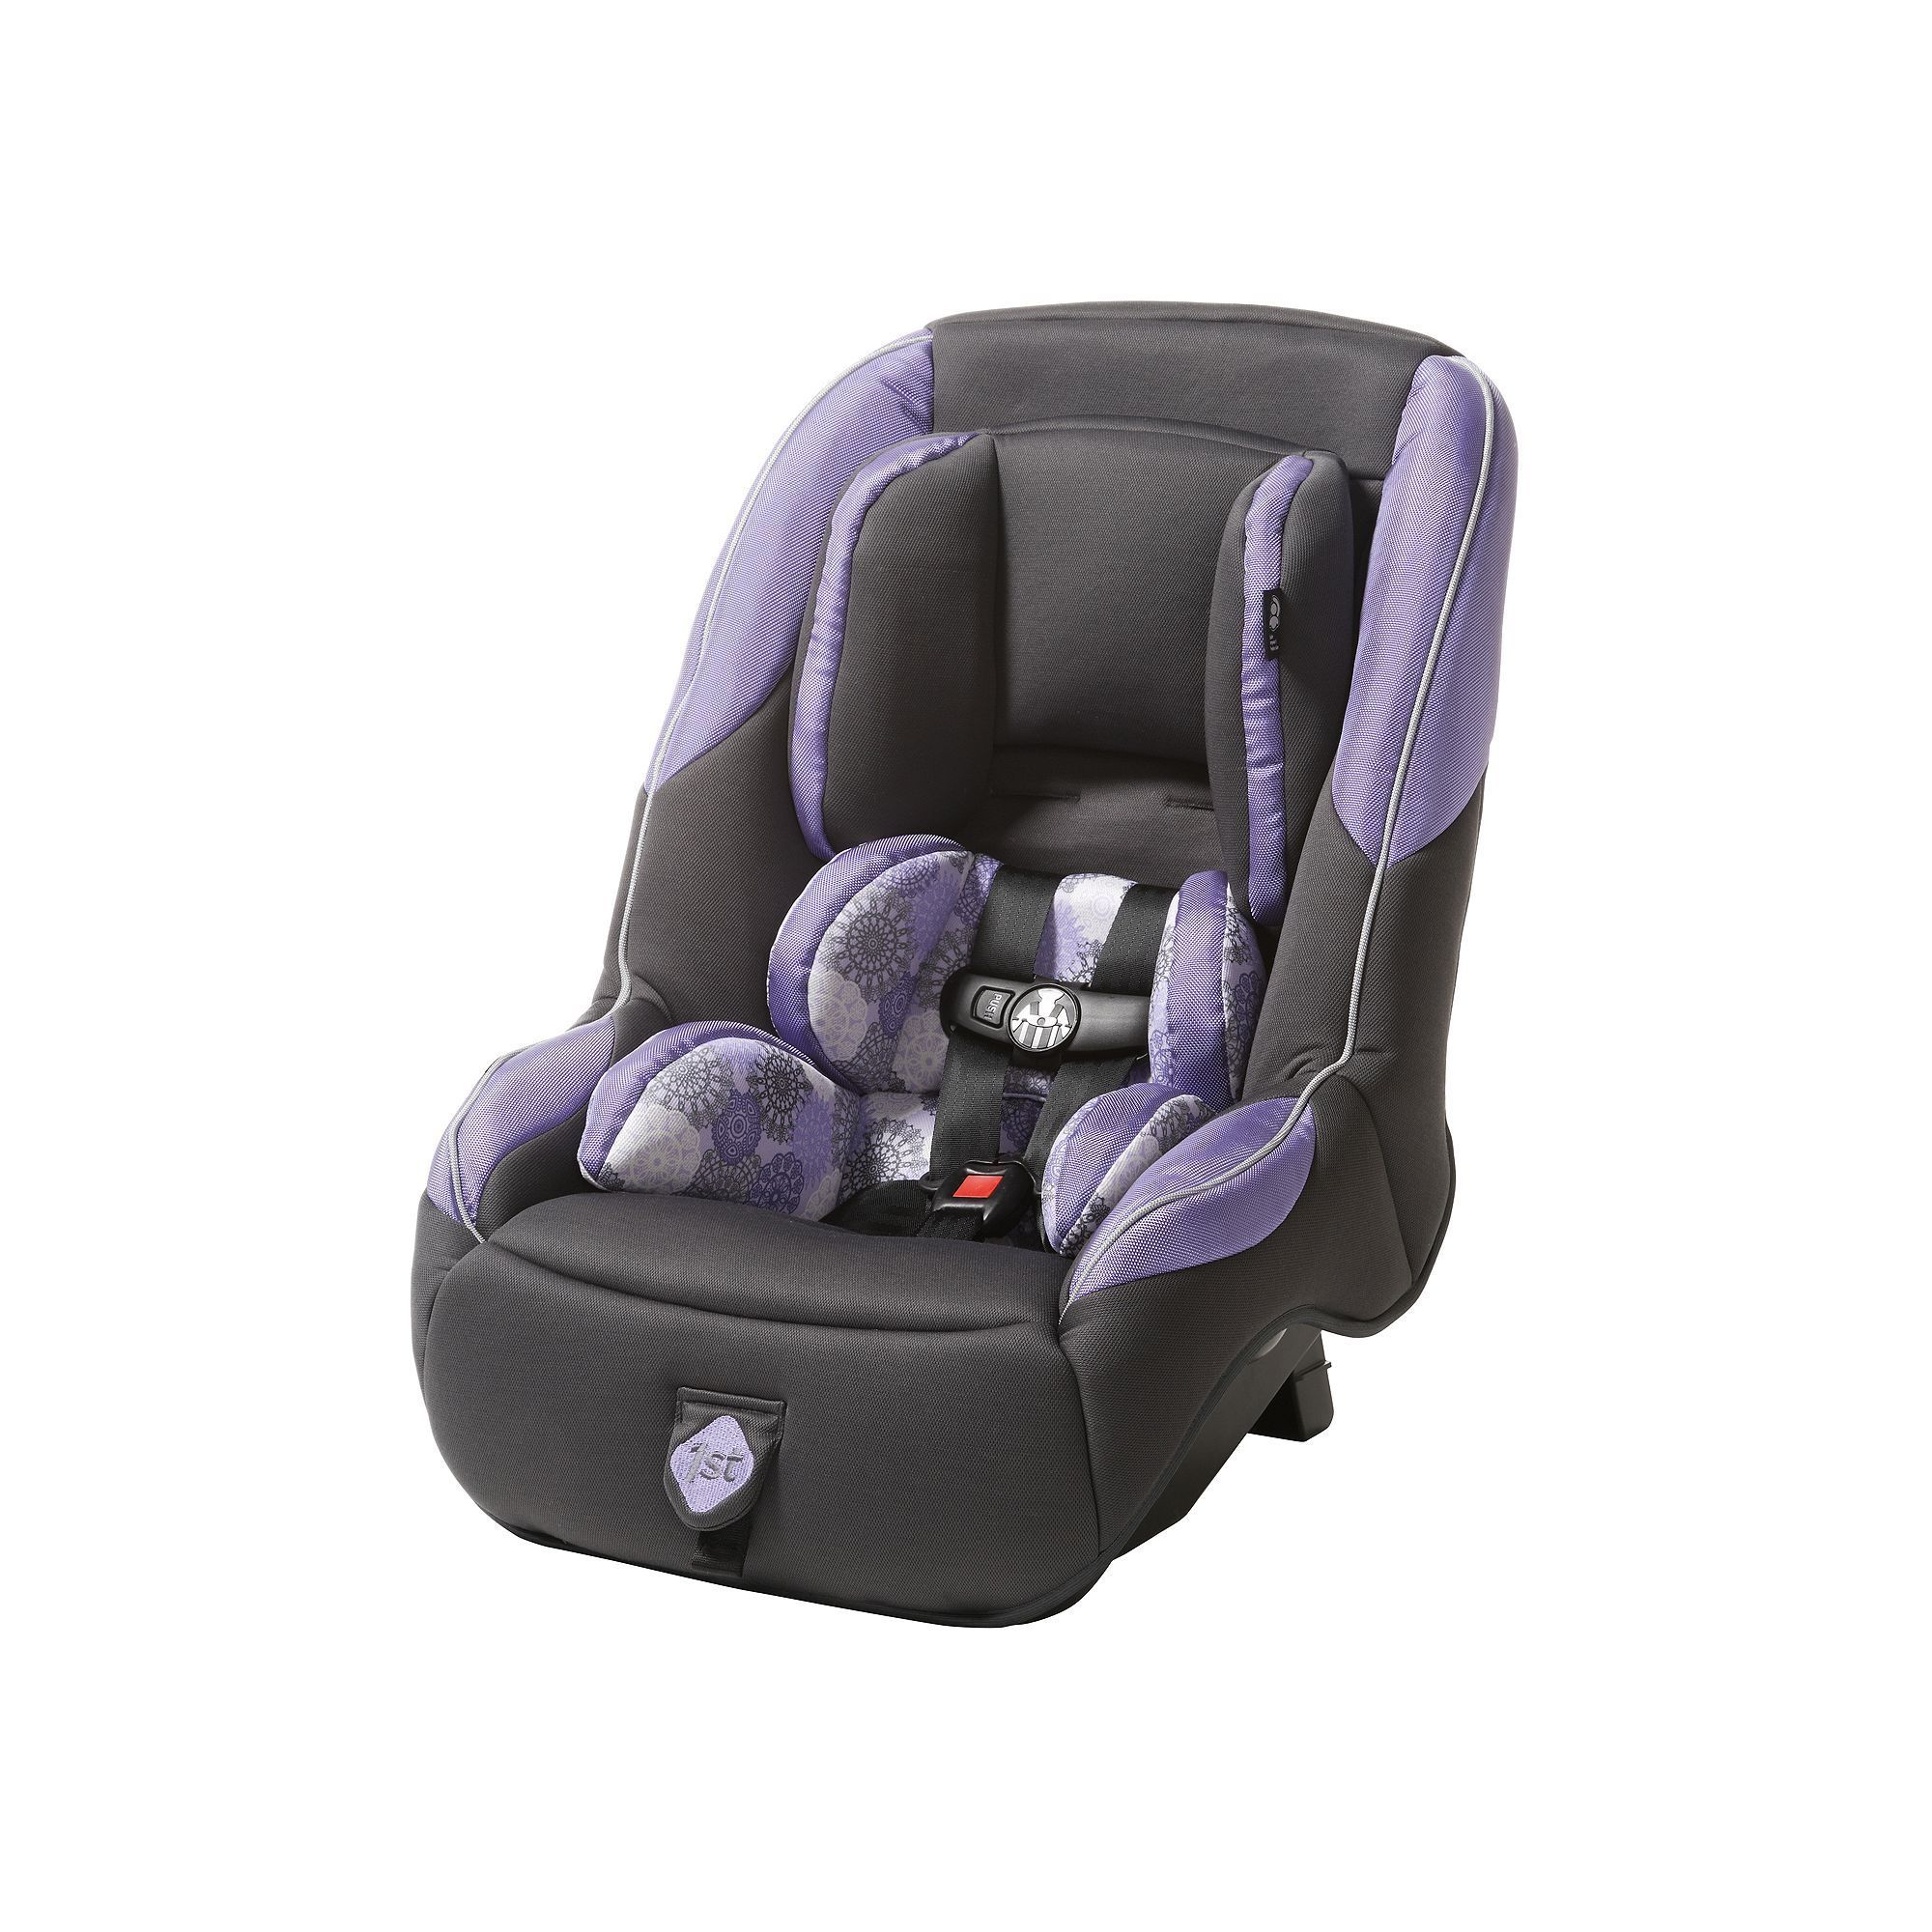 Safety 1st Chart Guide 65 Convertible